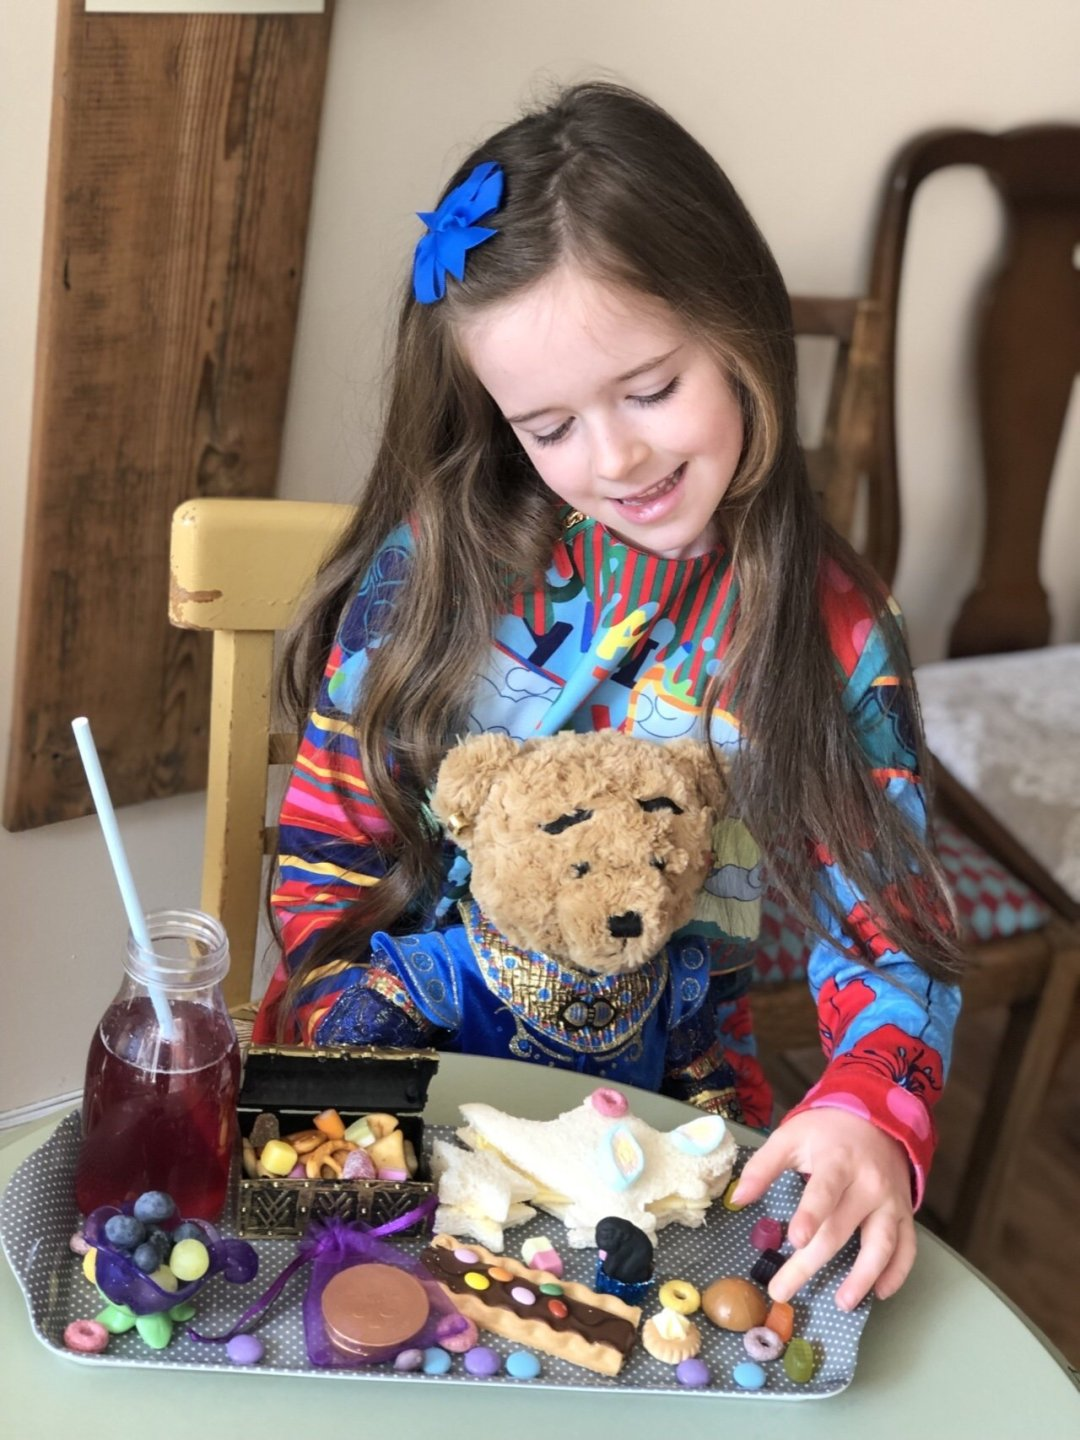 Little girl and bear with children's Aladdin themed afternoon tea